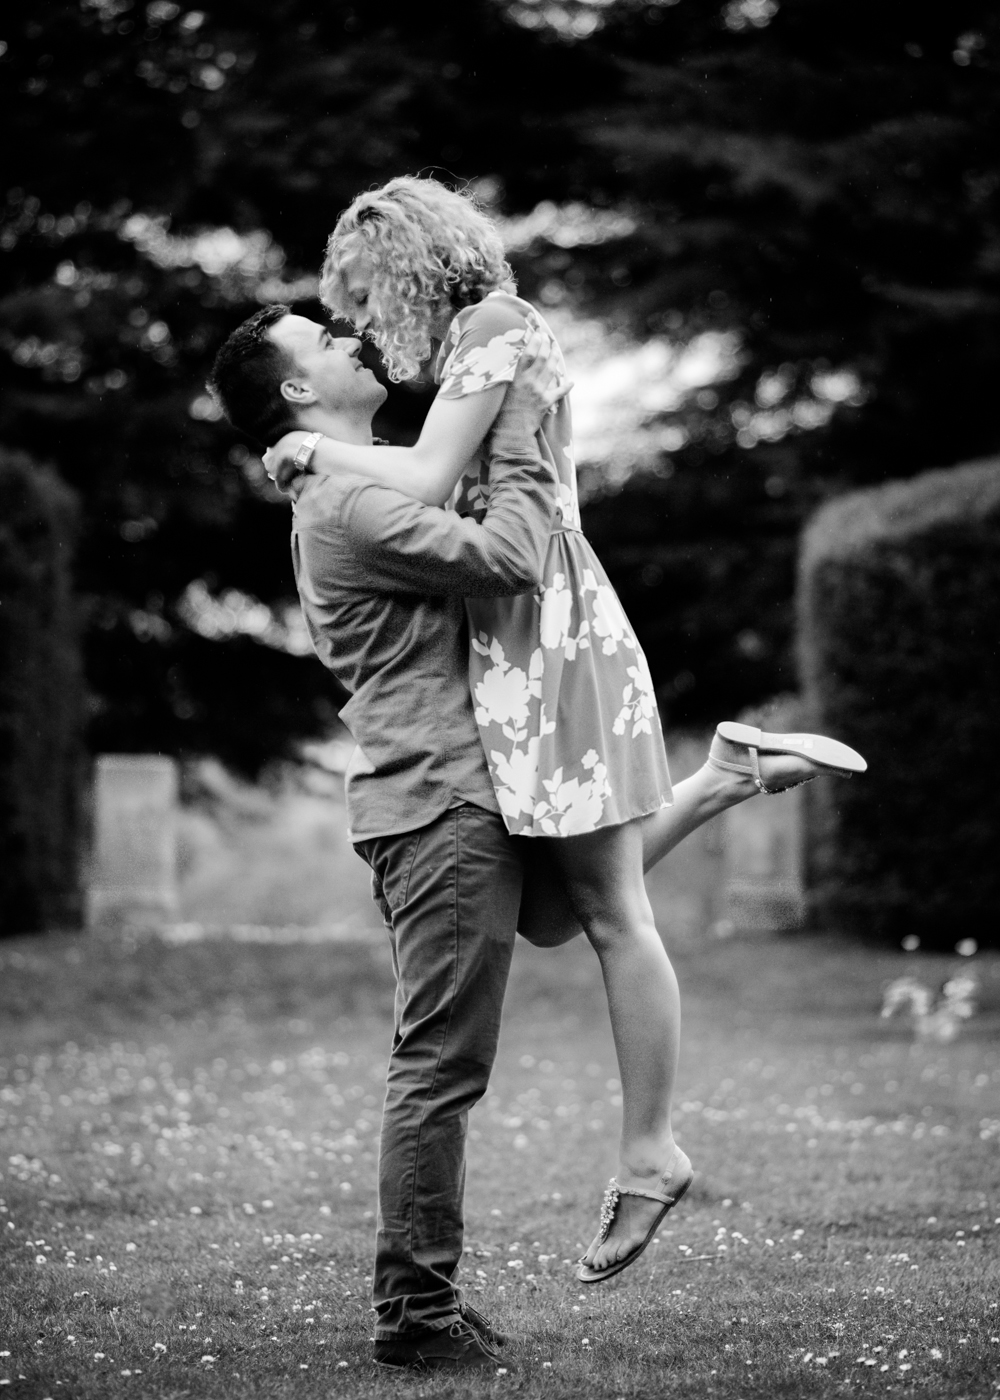 054 -  Sarah and Davids preWED at Stoke Rochford Hall by www.markpugh.com - 0123.JPG